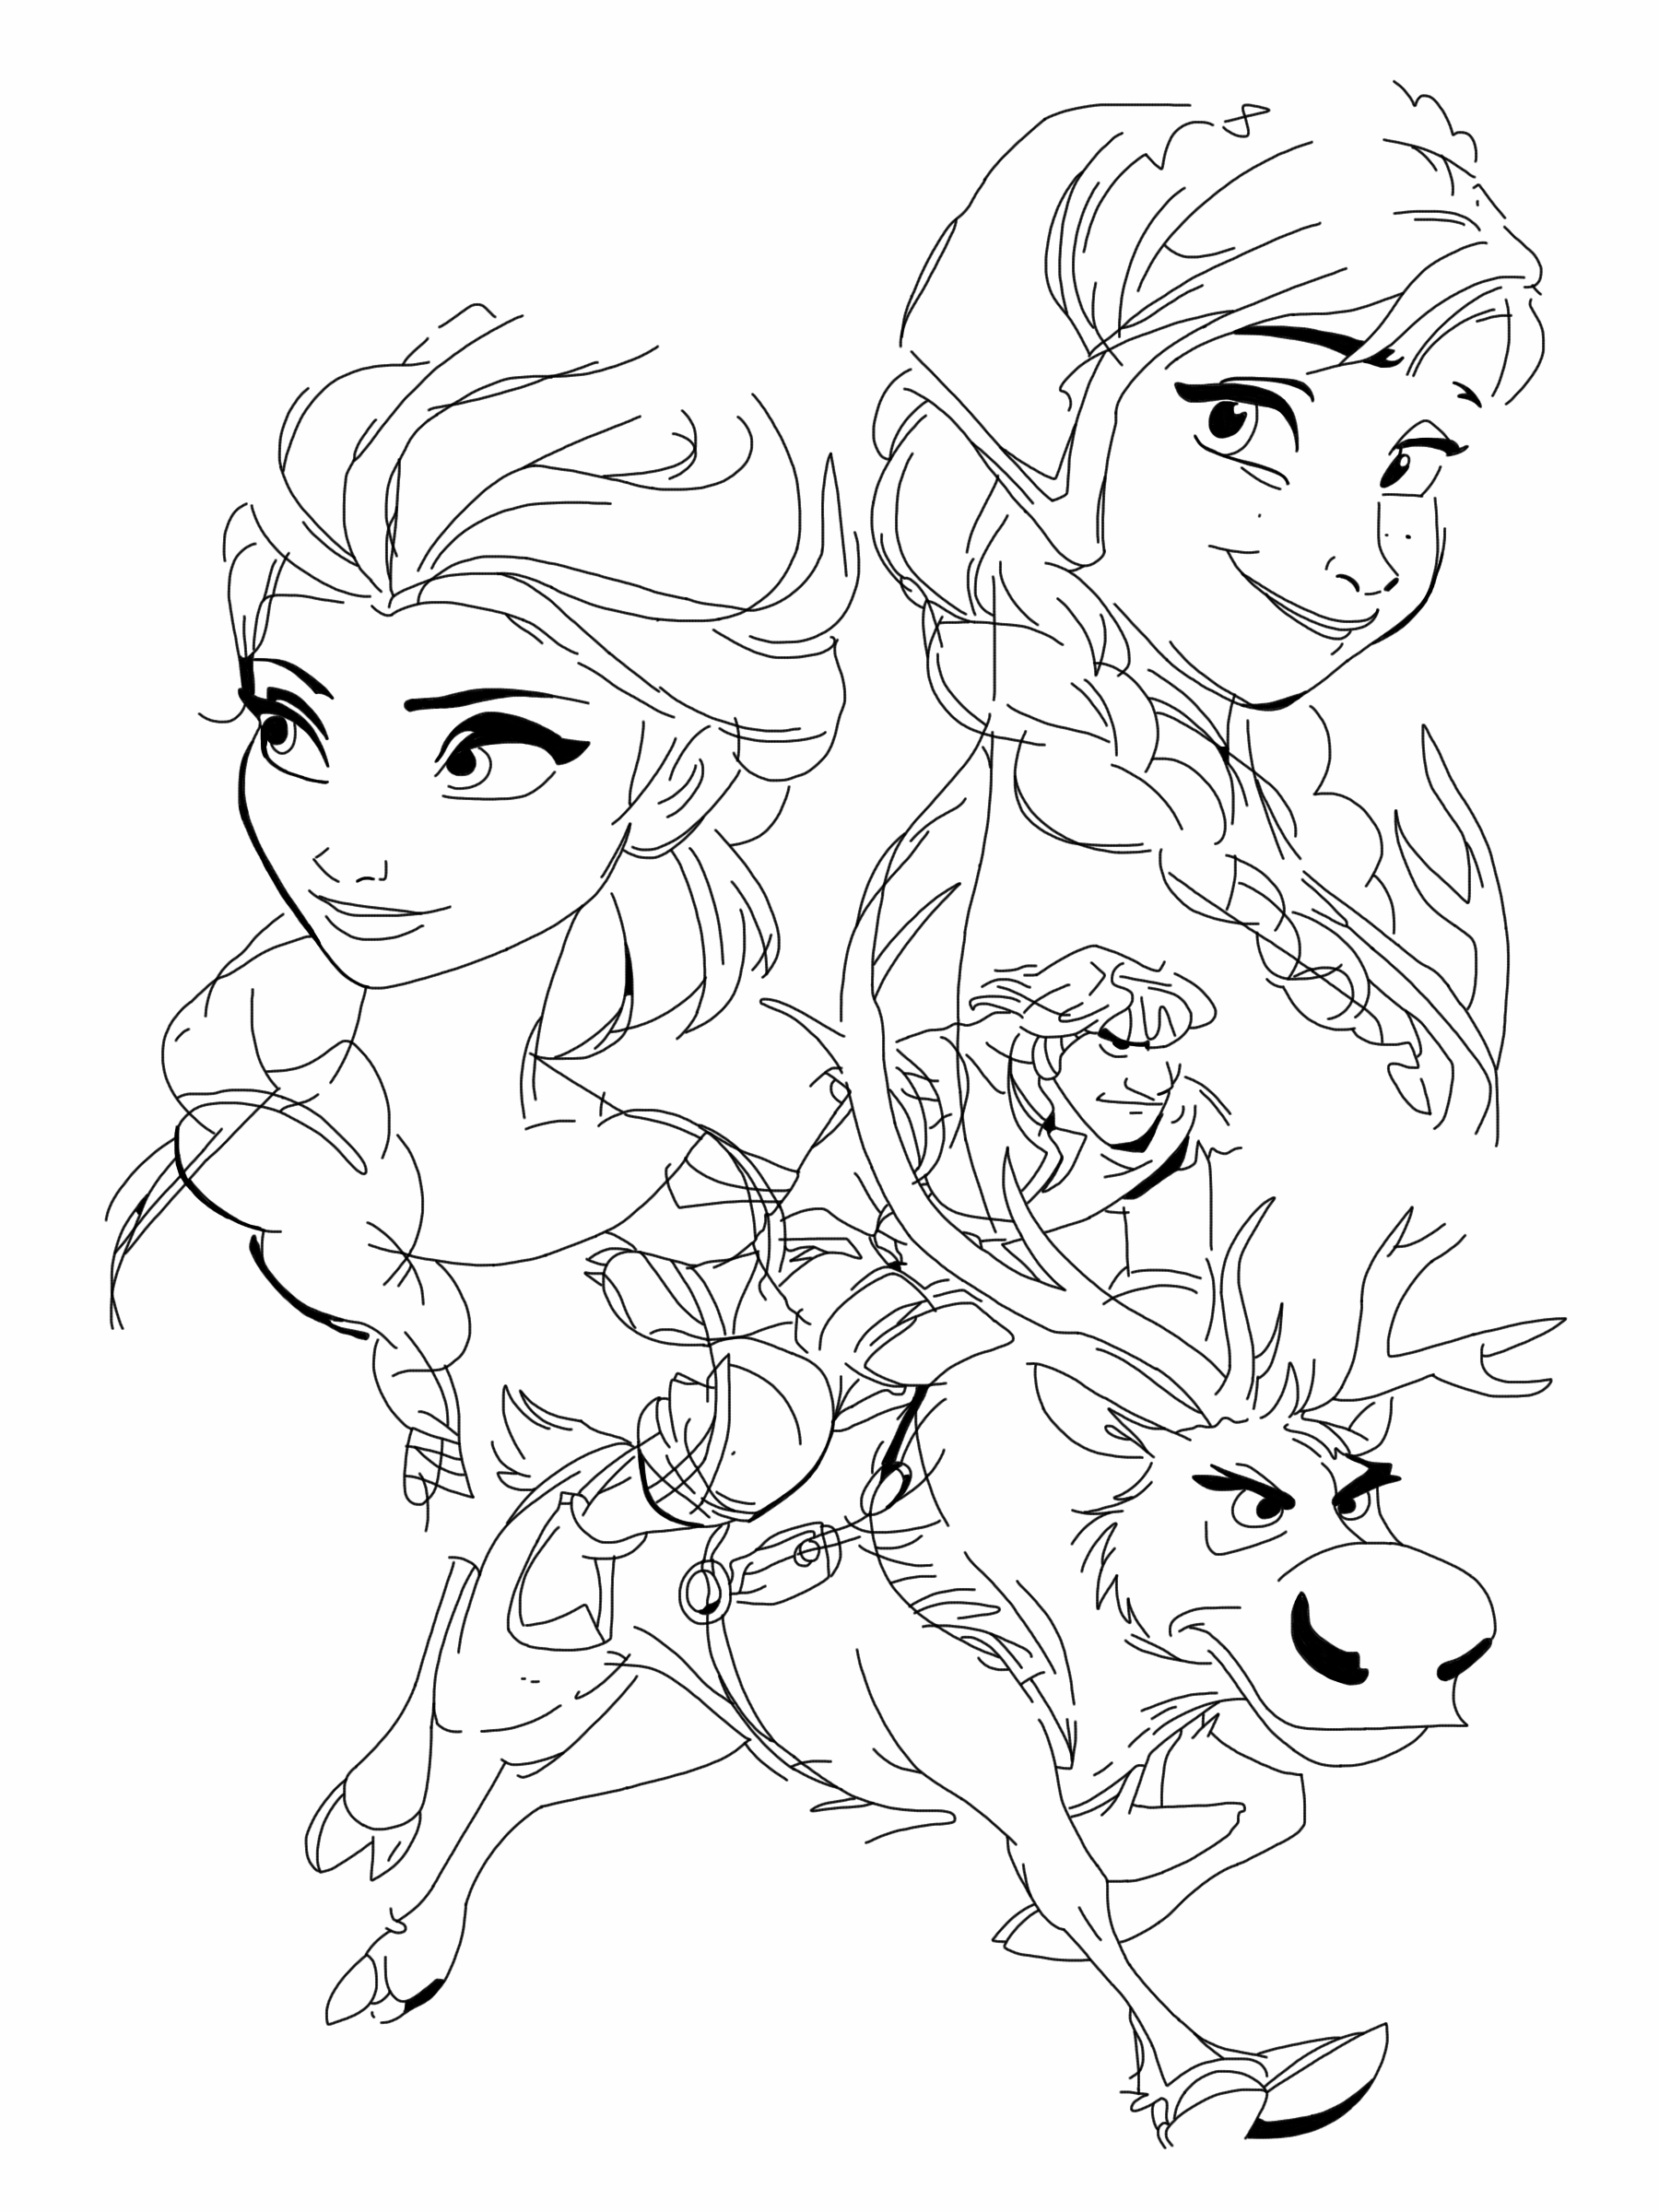 Anna Und Elsa Ausmalbilder Gratis : Frozen Drawing Anna And Elsa At Getdrawings Com Free For Personal